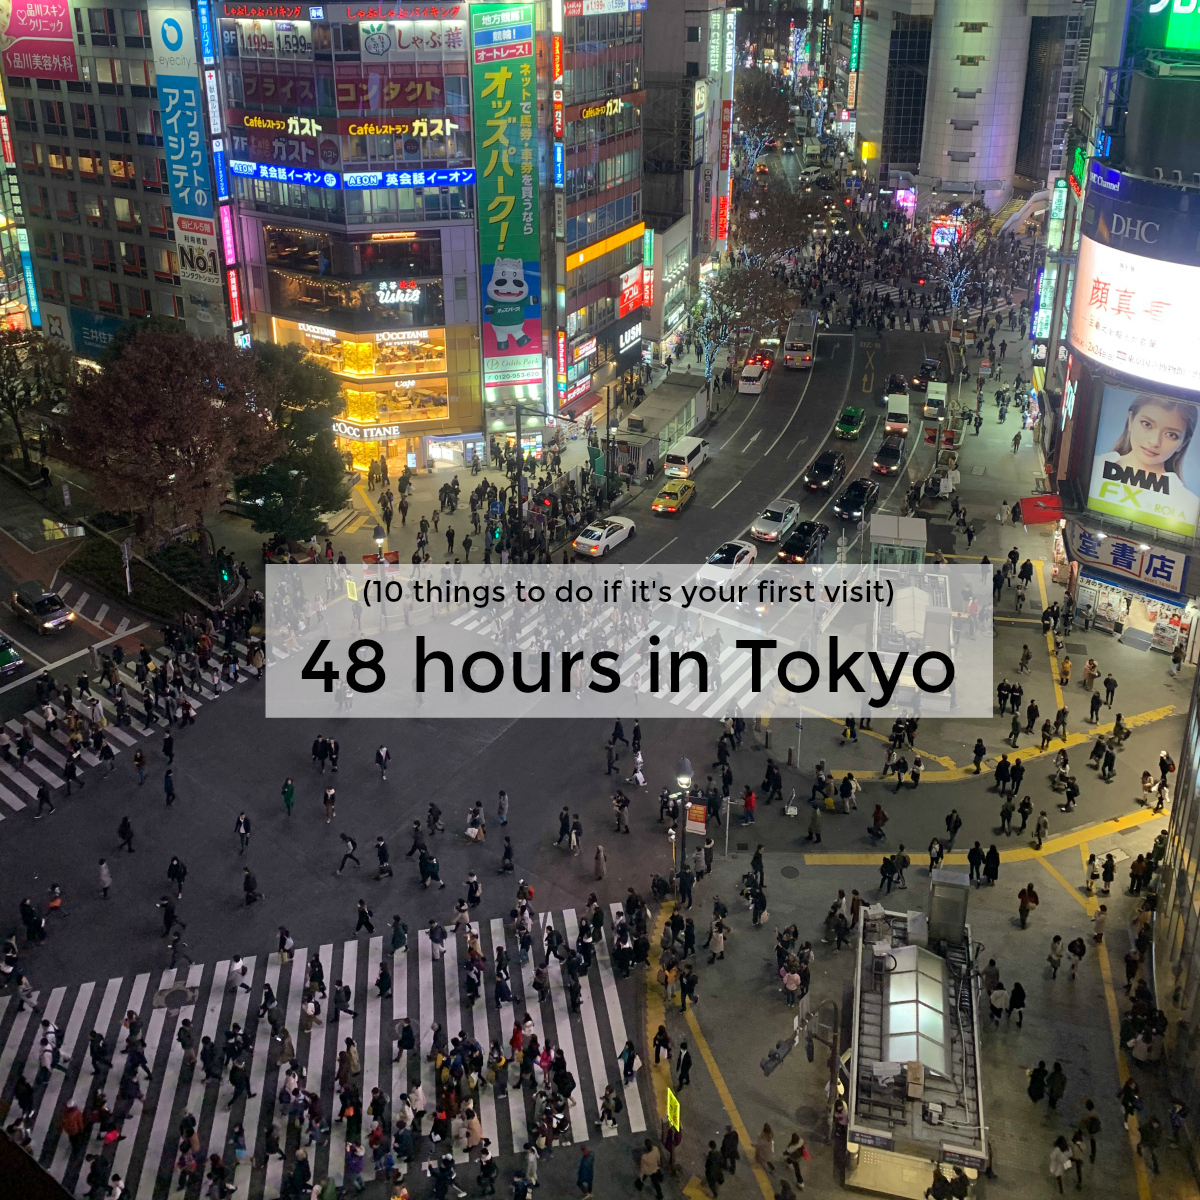 10 things to do if it's your first visit - 48 hours in Tokyo